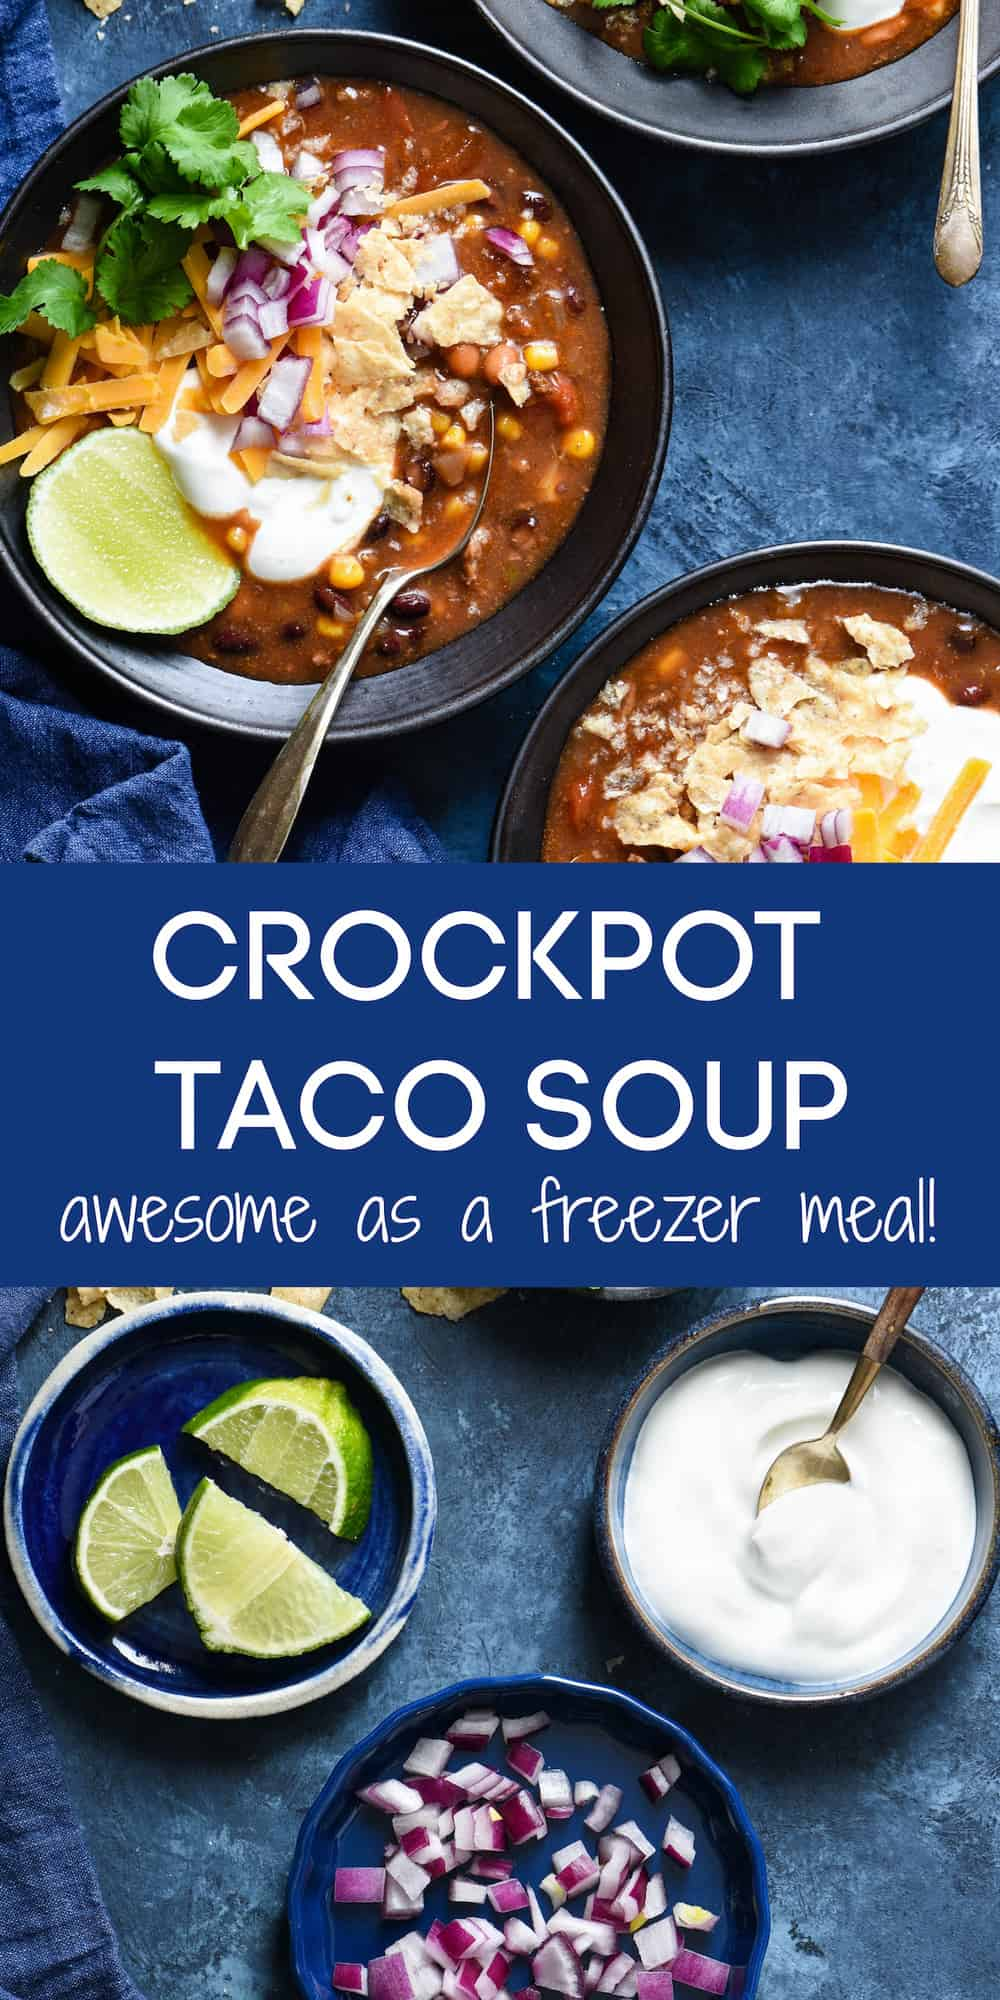 Collage of images of bowls of taco soup and bowls of garnishes with overlay: CROCKPOT TACO SOUP awesome as a freezer meal!